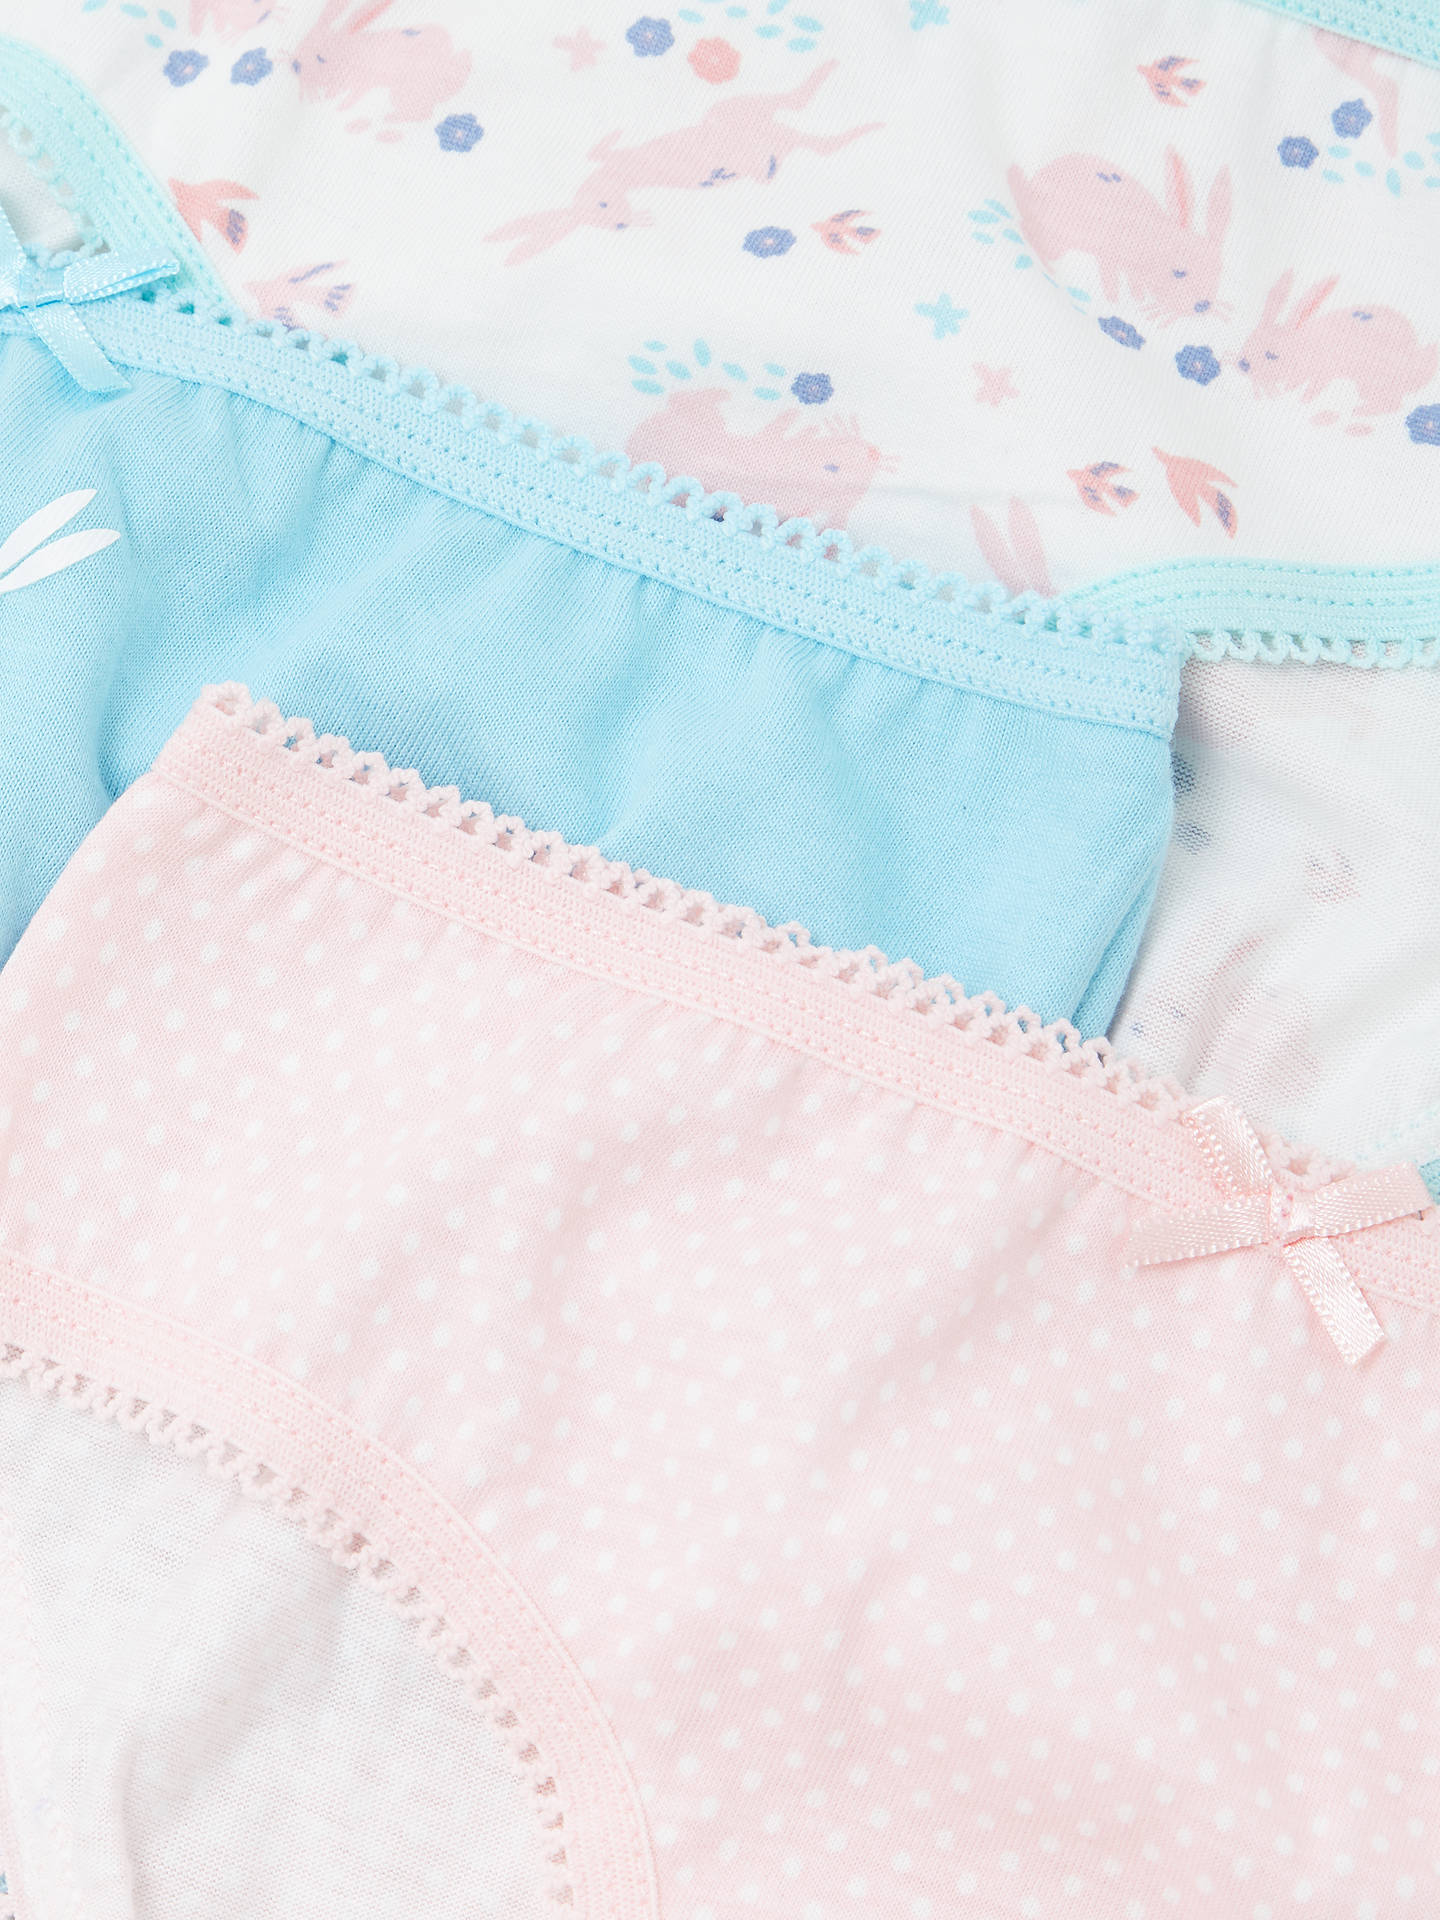 BuyJohn Lewis & Partners Girls' Rabbit Briefs, Pack of 5, Pink, 2 years Online at johnlewis.com